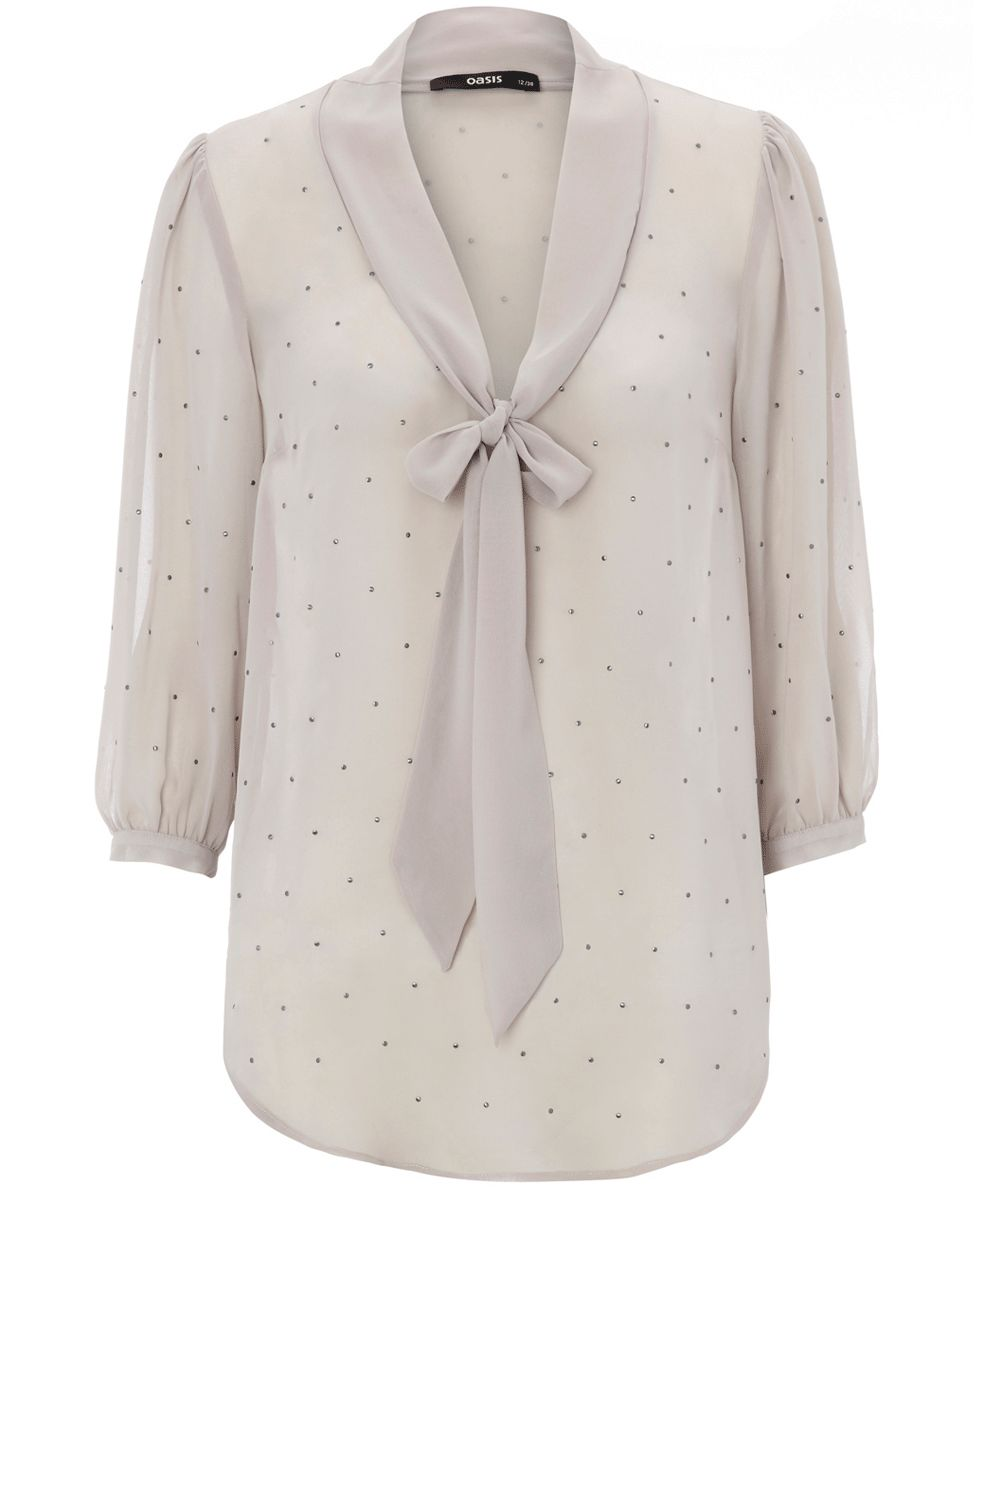 Oasis Stud sexy blouse - Natural product image